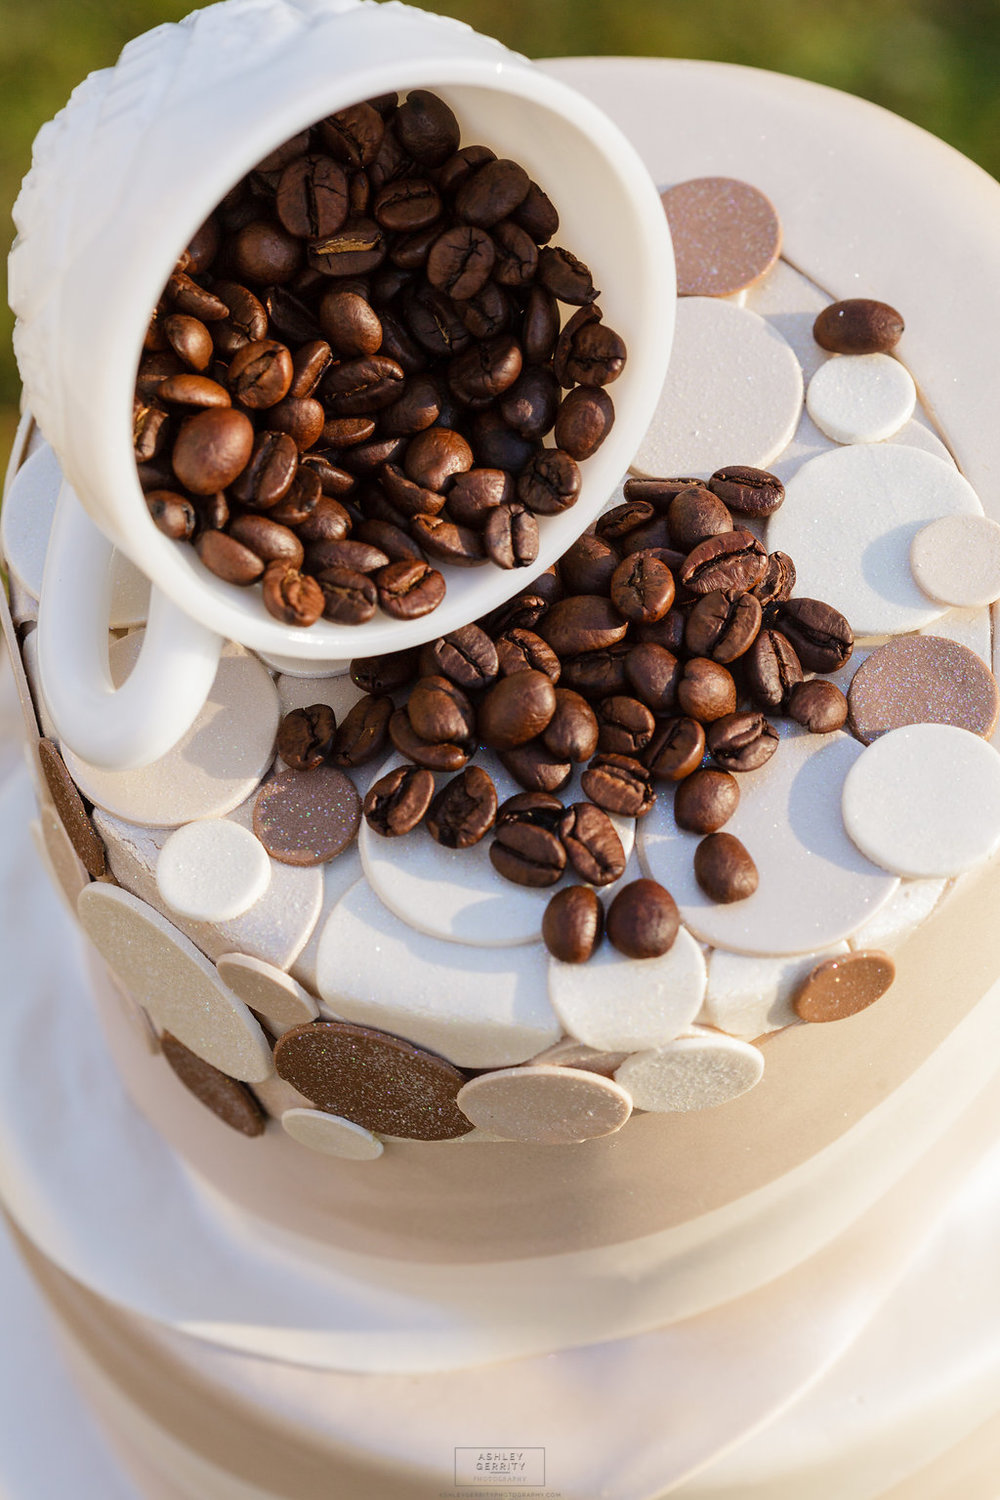 27 Coffee Themed Wedding Cake Gilmore Girls Wedding Inspiration.jpg